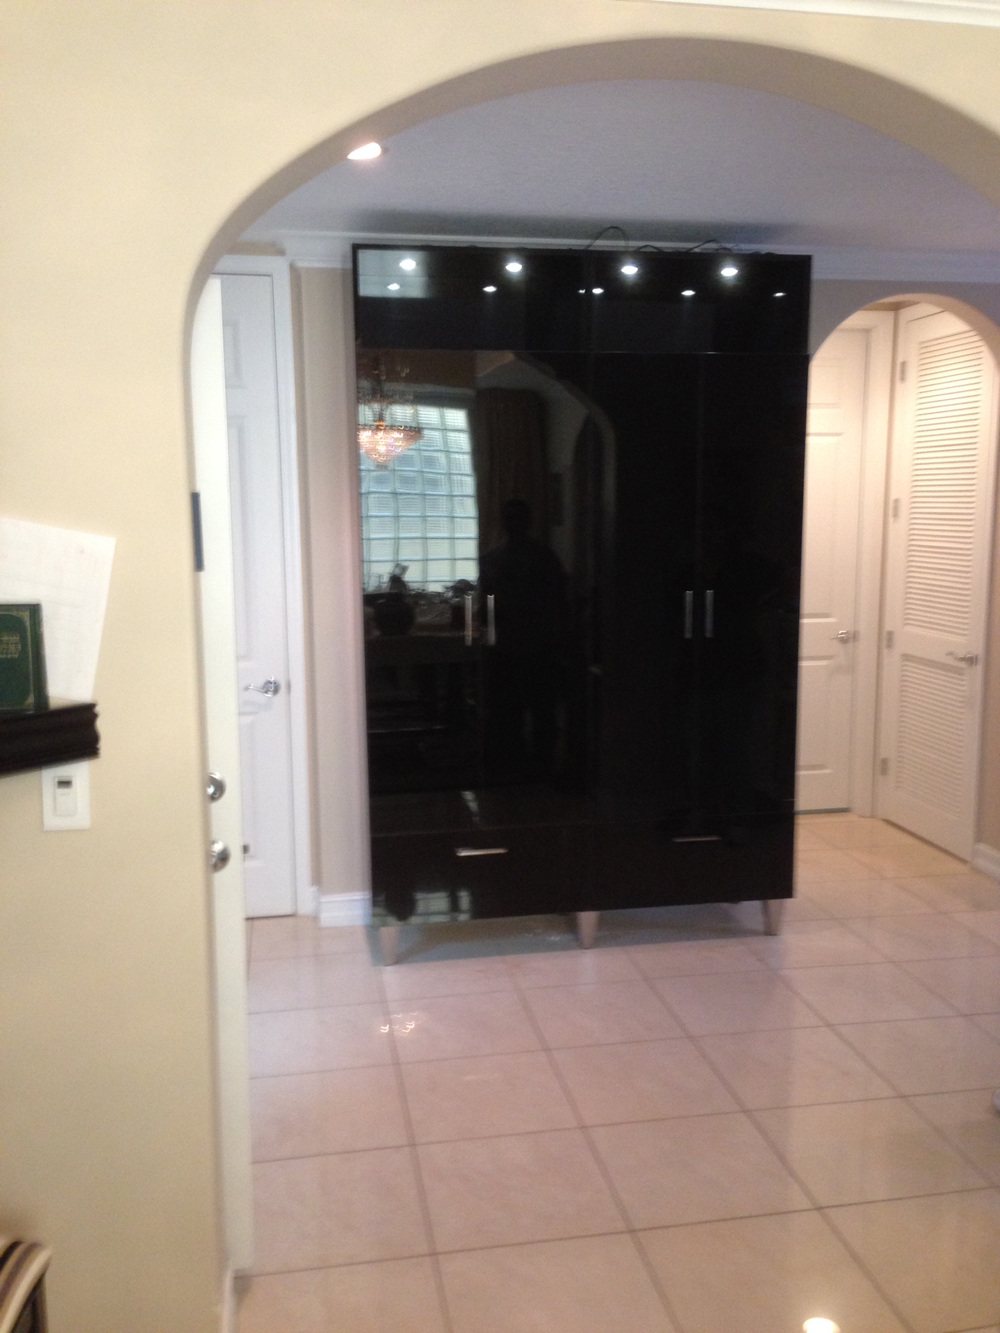 High Gloss Black Acrylic China Cabinet With LED Lighting And Stainless Legs